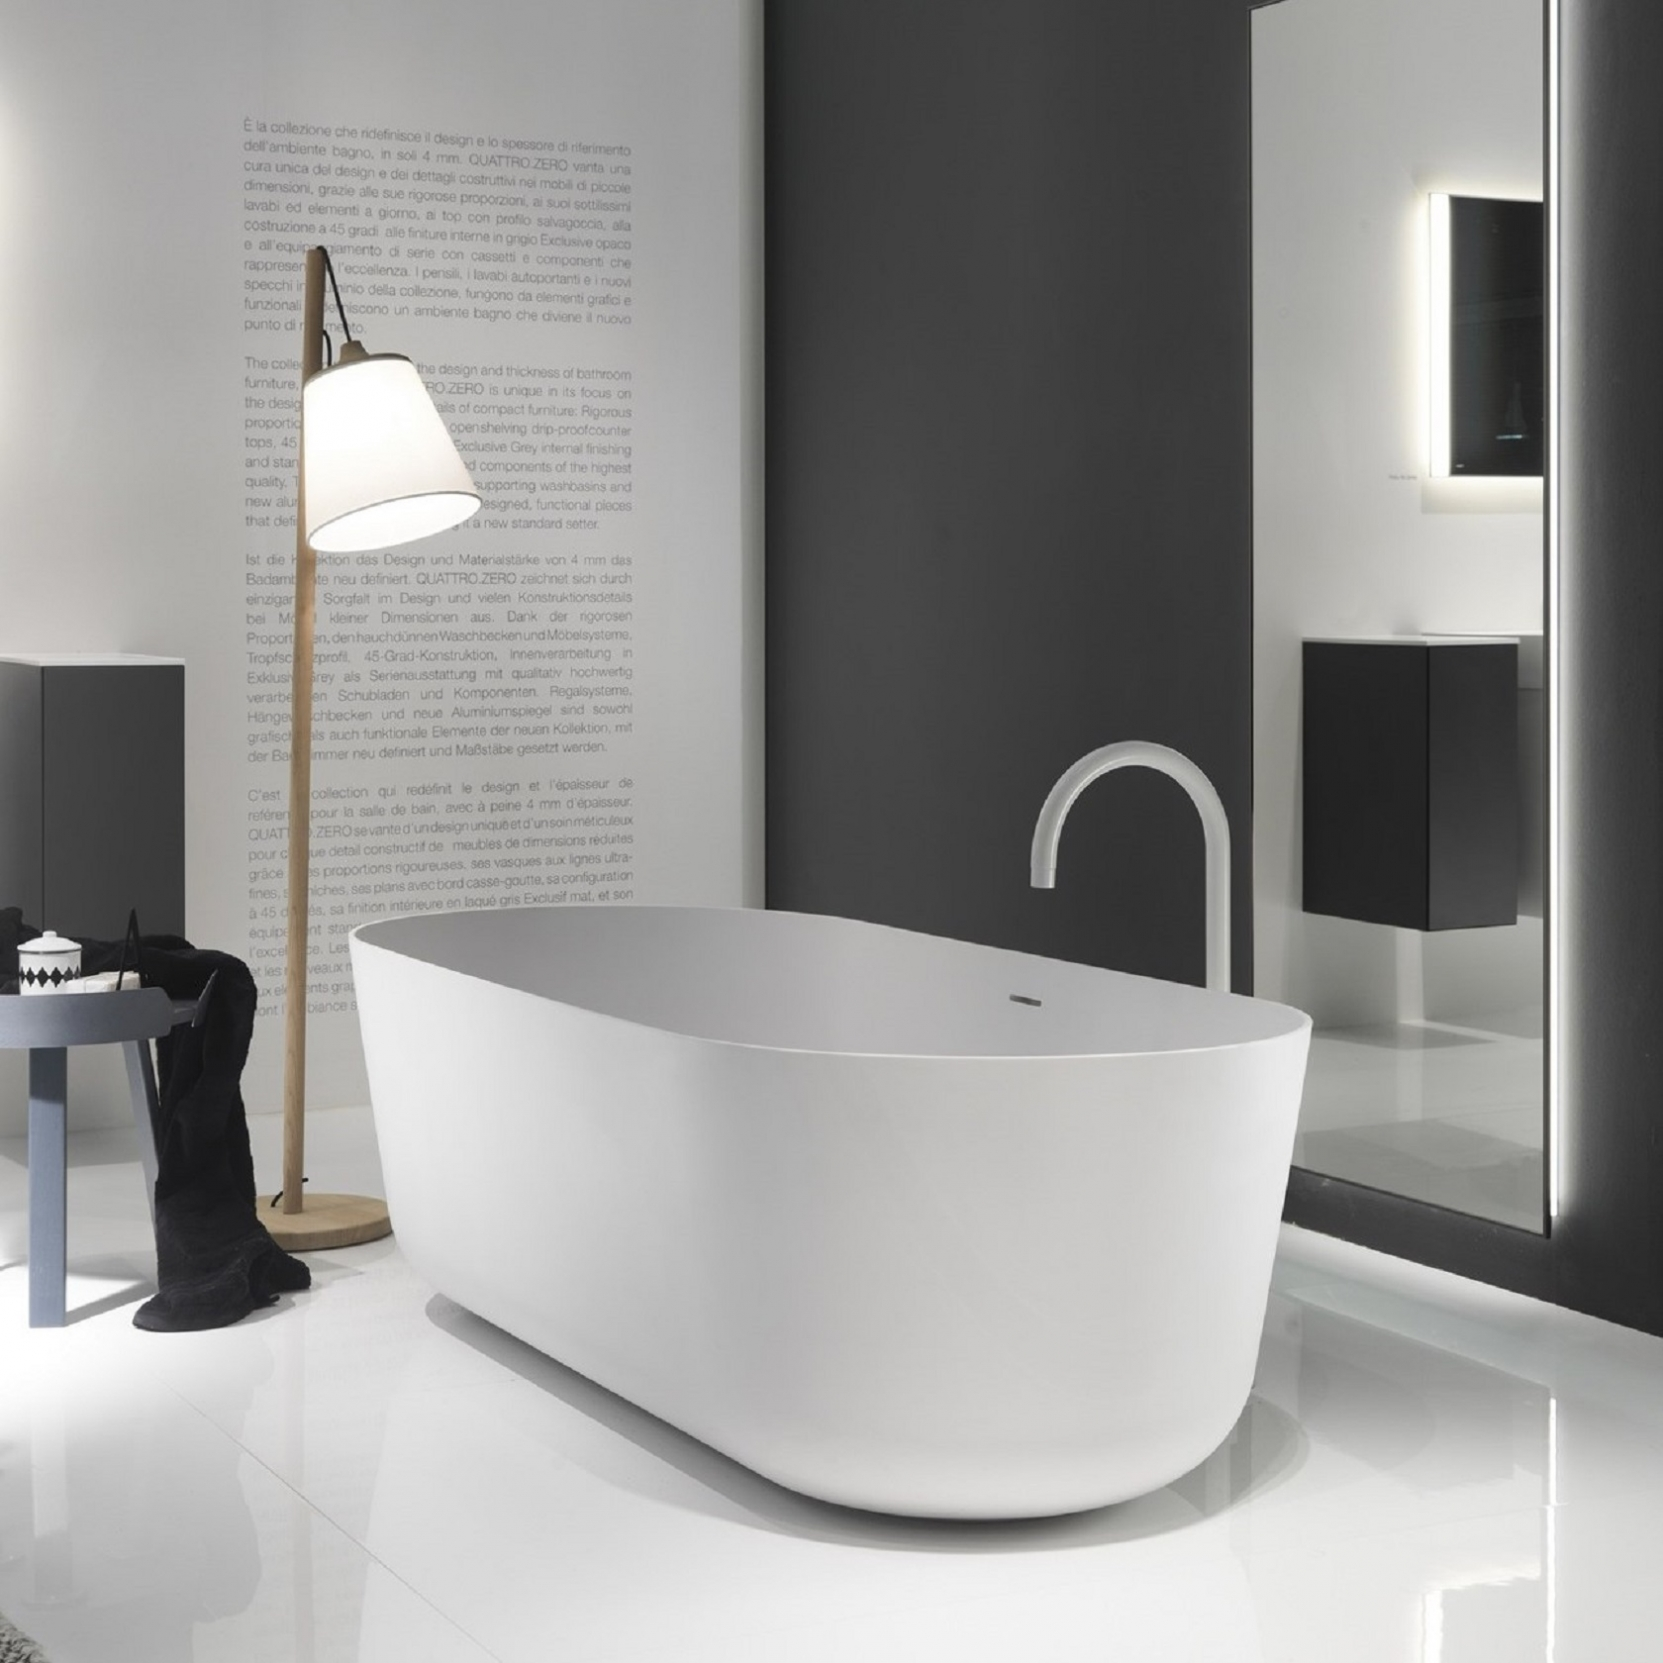 Falper Quattro Zero Freestanding Bathtub Tattahome